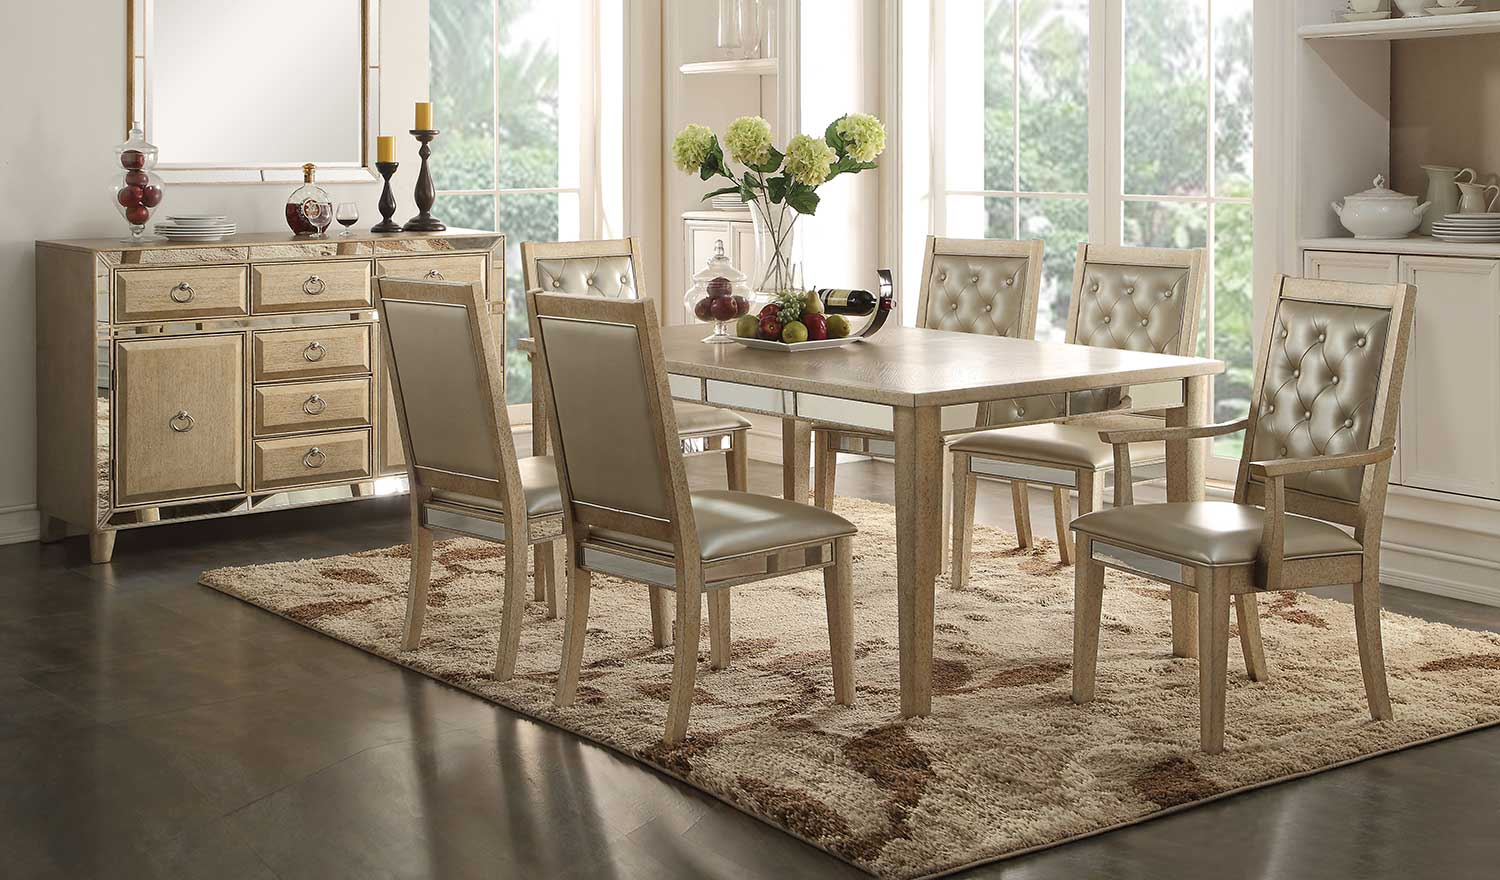 Acme Voeville Dining Set - Antique Gold